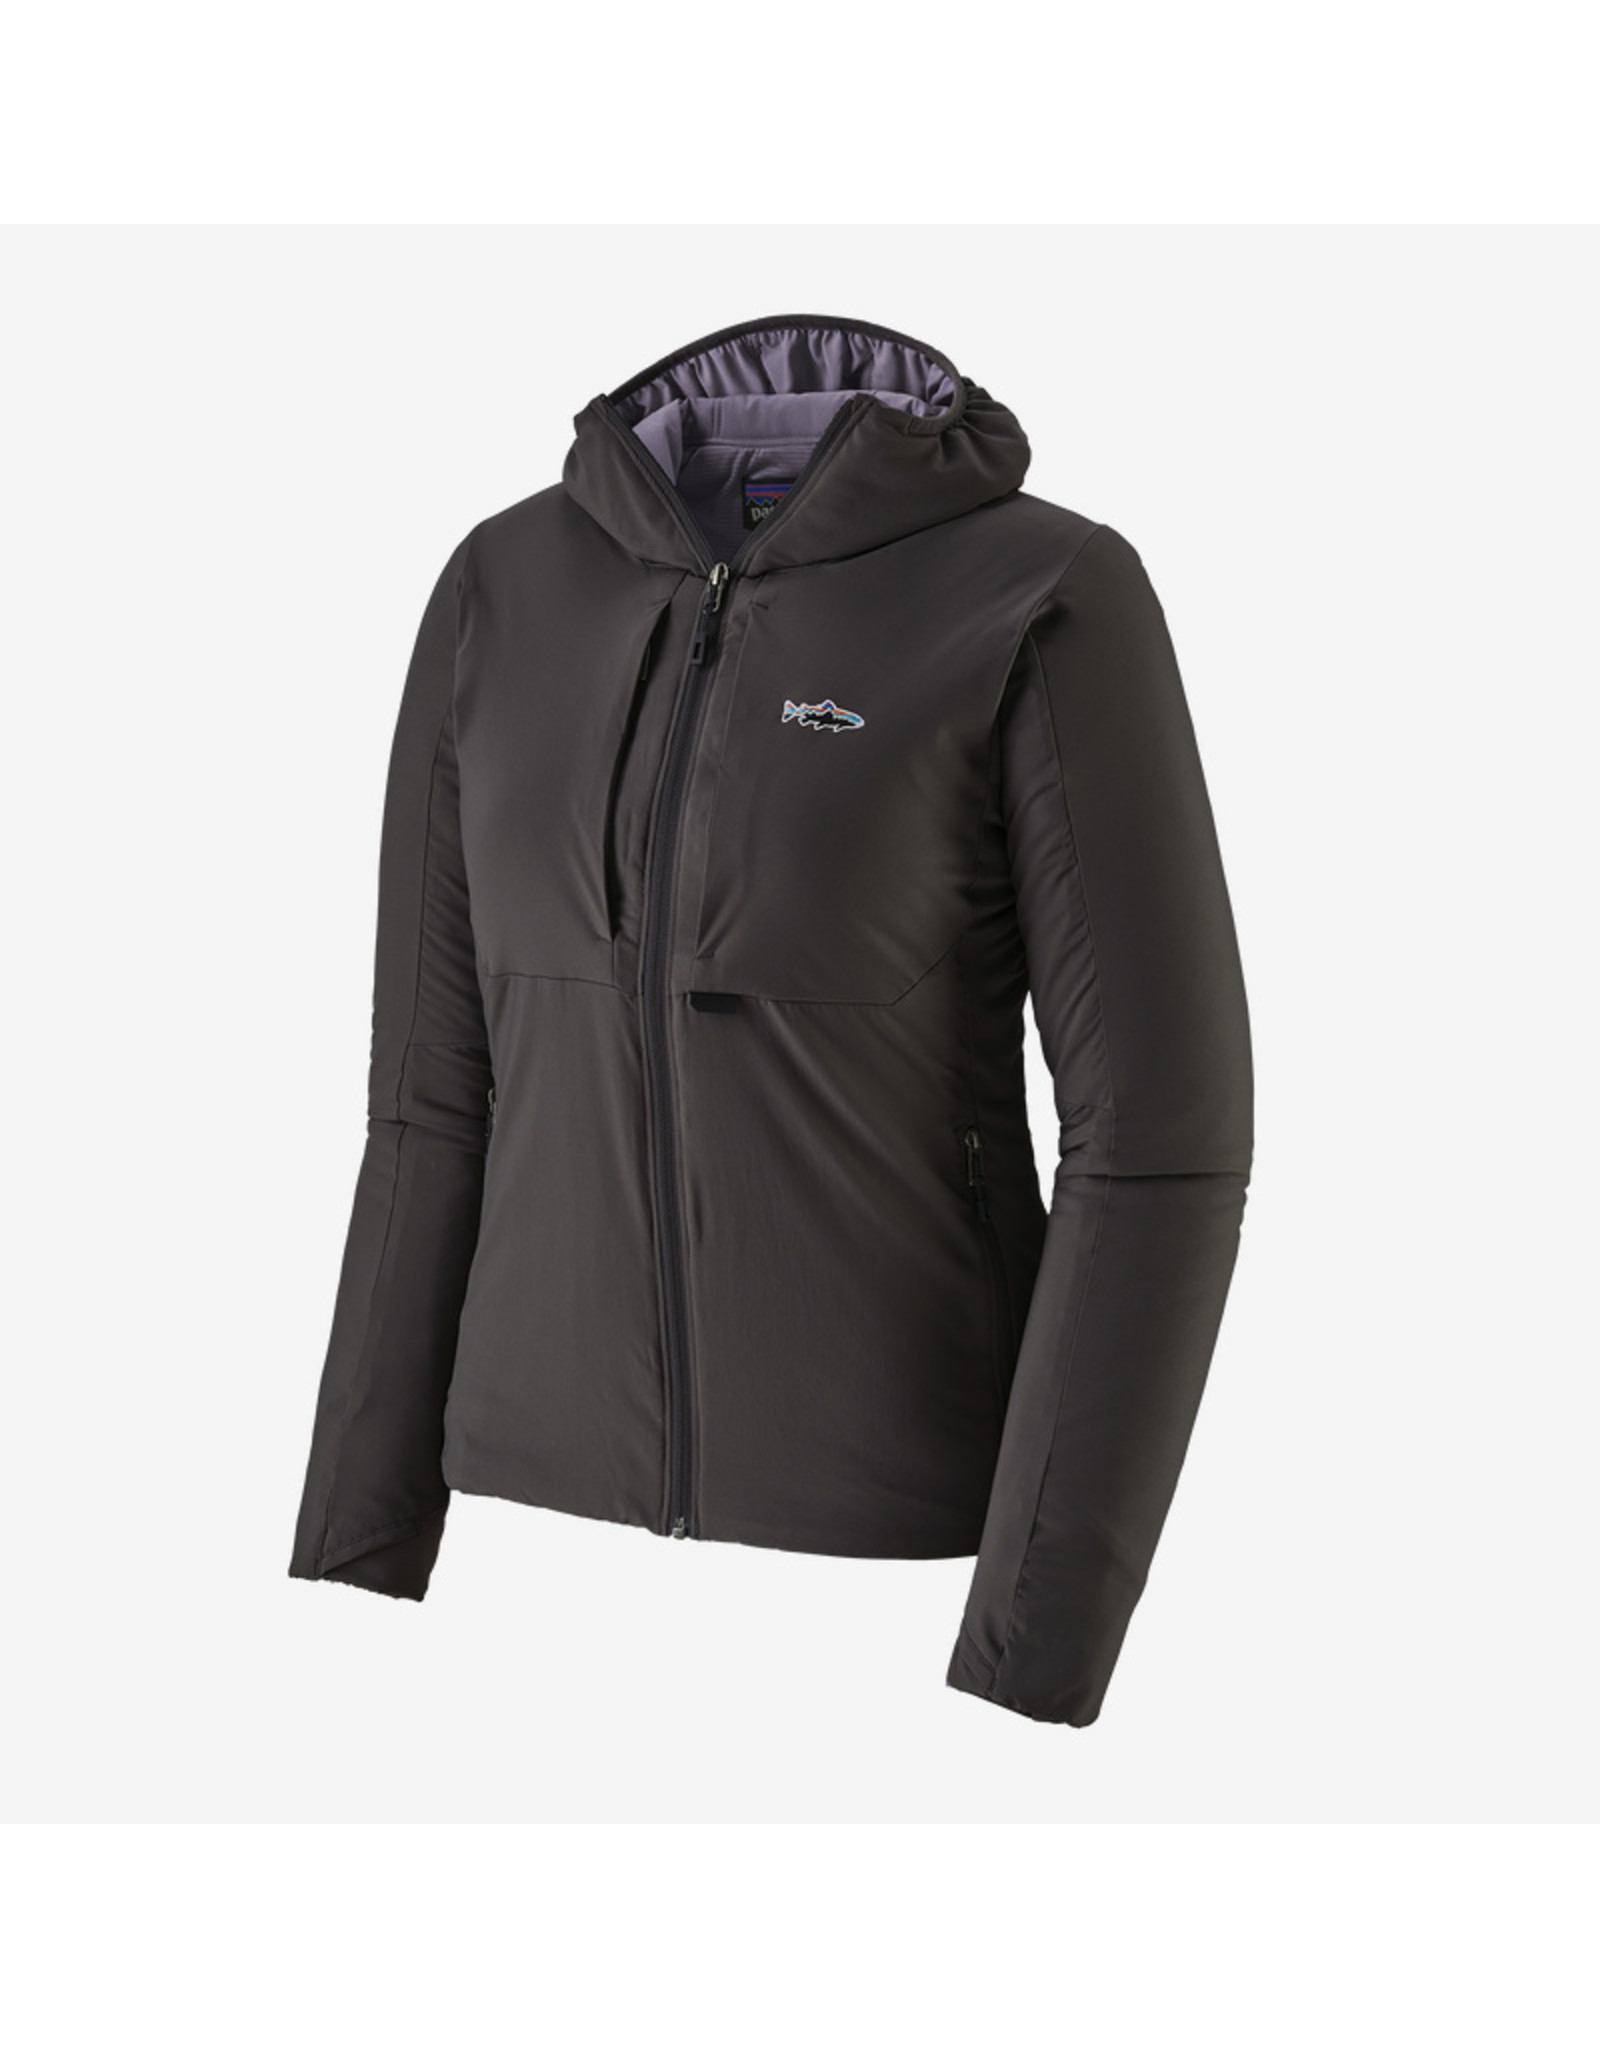 Patagonia Patagonia - Women's Tough Puff Hoody